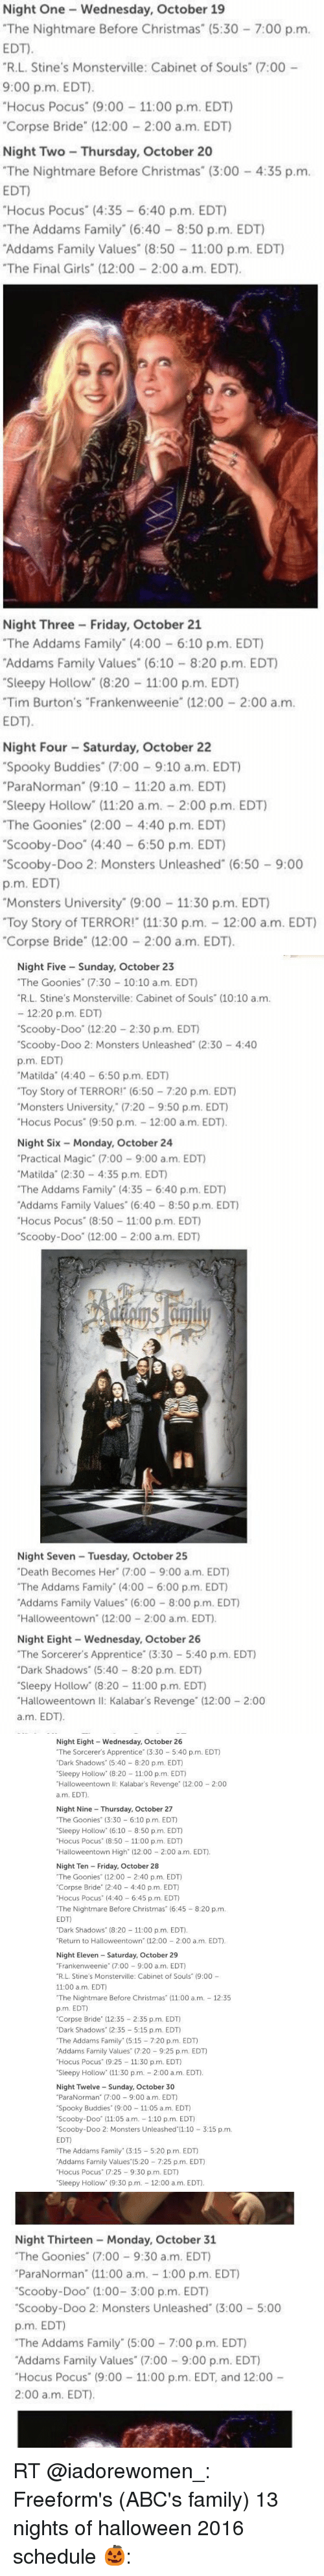 """monster university: Night One Wednesday, October 19  """"The Nightmare Before Christmas (5:30 7:00 p.m.  EDT.  """"R.L. Stine's Monsterville: Cabinet of Souls"""" (7:00  9:00 p.m. EDT).  Hocus Pocus"""" (9:00  11:00 p.m. EDT)  """"Corpse Bride"""" (12:00 2:00 a.m. EDT)  Night Two Thursday, October 20  """"The Nightmare Before Christmas"""" (3:00 4:35 p.m.  EDT)  """"Hocus Pocus"""" (4:35 6:40 p.m. EDT)  """"The Addams Family"""" (6:40 8:50 p.m. EDT)  Addams Family Values (8:50 11:00 p.m. EDT)  """"The Final Girls"""" (12:00 2:00 a.m. EDT).  Night Three Friday, October 21  """"The Addams Family (4:00 6:10 p.m. EDT)  Addams Family Values (6:10 8:20 p.m. EDT)  """"Sleepy Hollow"""" (8:20 11:00 p.m. EDT)  """"Tim Burton's """"Frankenweenie"""" (12:00 2:00 a m.  EDT.  Night Four Saturday, October 22  """"Spooky Buddies"""" (7:00 9:10 a.m. EDT)  """"ParaNorman"""" (9:10 11:20 a.m. EDT)  Sleepy Hollow"""" (11:20 a.m. 2:00 p.m. EDT)  """"The Goonies"""" (2:00 4:40 p.m. EDT)  """"Scooby-Doo"""" (4:40 6:50 p.m. EDT)  """"Scooby-Doo 2: Monsters Unleashed (6:50 9:00  p.m. EDT)  """"Monsters University (9:00 11:30 p.m. EDT)  """"Toy Story of TERROR! (11:30 p.m. 12:00 a.m. EDT)  """"Corpse Bride"""" (12:00 2:00 a.m. EDT).   Night Five Sunday, October 23  """"The Goonies"""" (7:30 10:10 a.m. EDT  """"R L. Stine's Monsterville: Cabinet of Souls (10:10 a.m.  12:20 p.m. EDT  """"Scooby-Doo"""" (12:20 2:30 p.m. EDT)  """"Scooby-Doo 2: Monsters Unleashed (2:30 4:40  p.m. EDT)  """"Matilda (4:40 6:50 p.m. EDT)  """"Toy Story of TERROR! (6:50 7:20 p.m. EDT)  Monsters University,"""" (7:20 9:50 p.m. EDT)  Hocus Pocus"""" (9:50 p.m. 12:00 a.m. EDT  Night Six Monday, October 24  """"Practical Magic (7:00 9:00 a.m. EDT)  """"Matilda (2:30 4:35 p.m. EDT)  """"The Addams Family"""" (4:35 6:40 p.m. EDT)  Addams Family Values"""" (6:40 8:50 p.m. EDT)  """"Hocus Pocus"""" (8:50 11:00 p.m. EDT)  """"Scooby-Doo"""" (12:00 2:00 a.m. EDT)  Night Seven Tuesday, October 25  """"Death Becomes Her"""" (7:00 9:00 a m. EDT)  """"The Addams Family"""" (4:00 6:00 p.m. EDT)  Addams Family Values"""" (6:00 8:00 p.m. EDT)  """"Halloweentown' (12:00 2:00 a.m. EDT).  Night Eight Wednesd"""